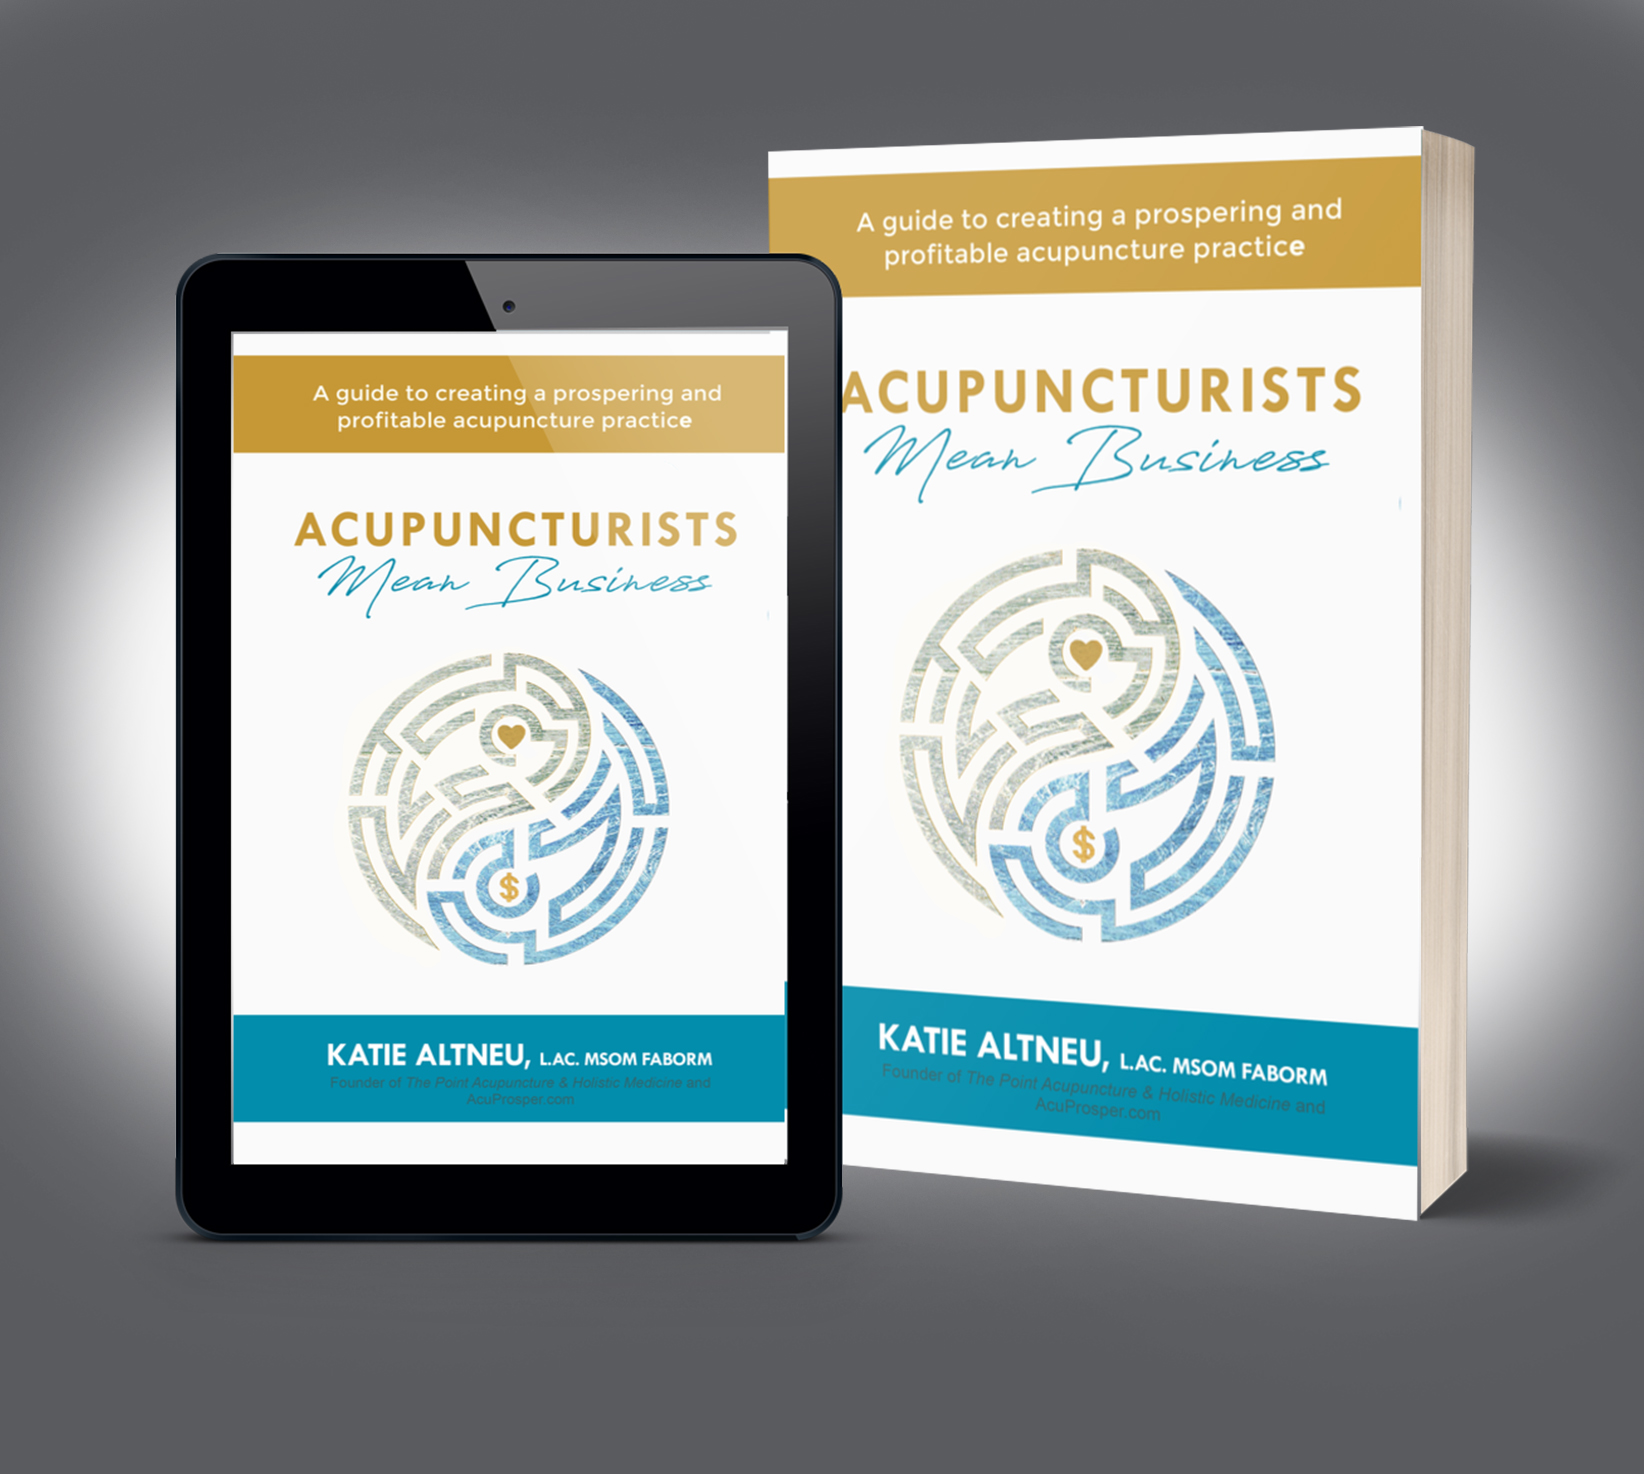 acupuncturists mean business